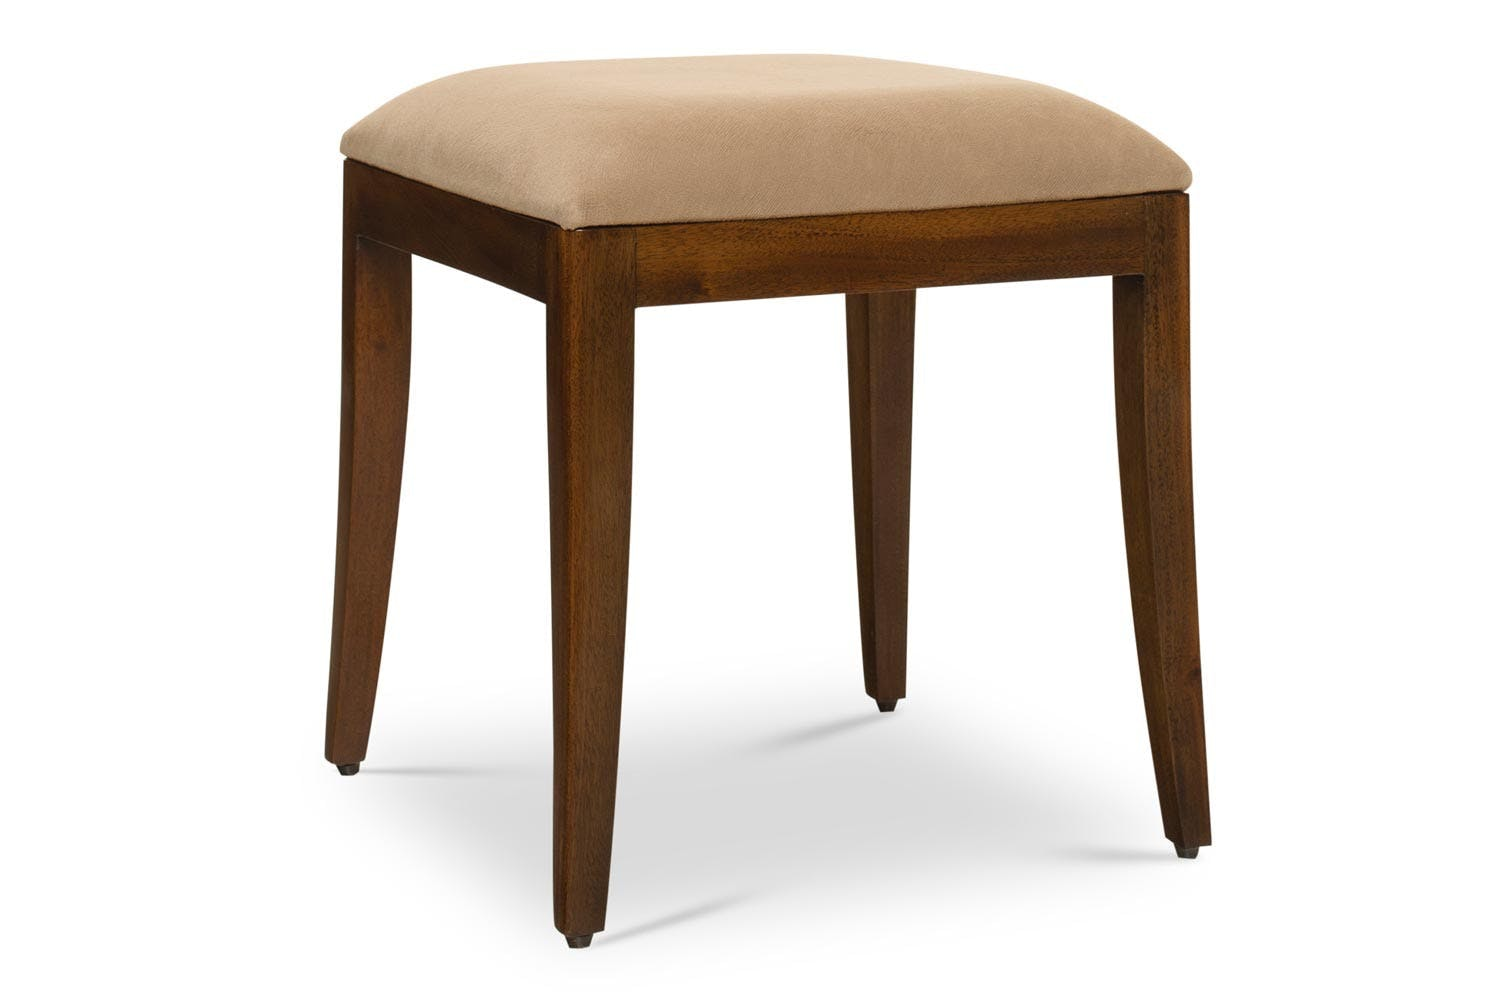 Barouge Stool Upholstered